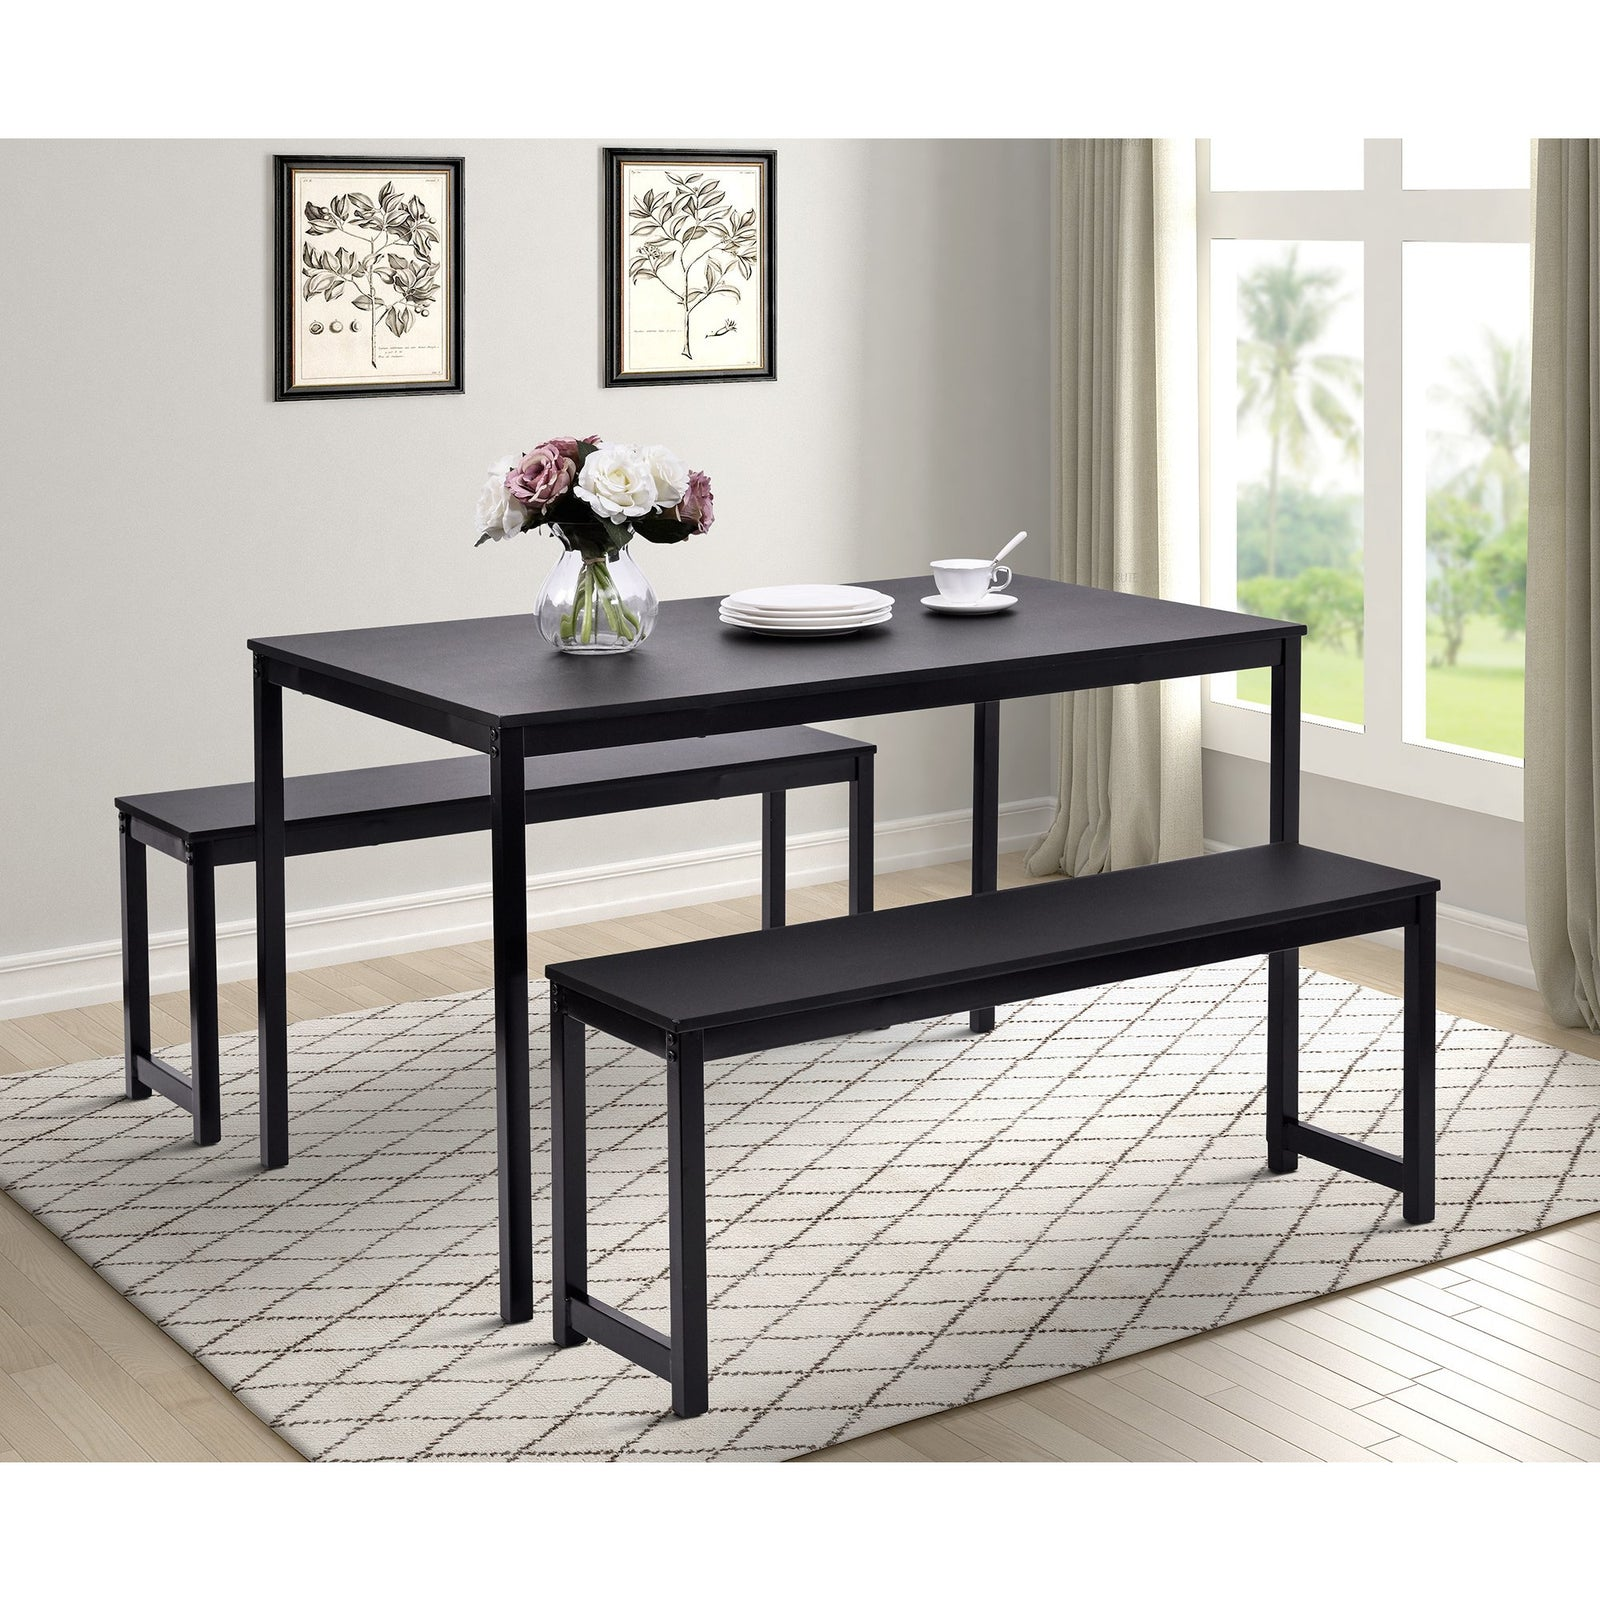 3 Counts - Dining Set with Two benches, Modern Dining Room Furniture - Black